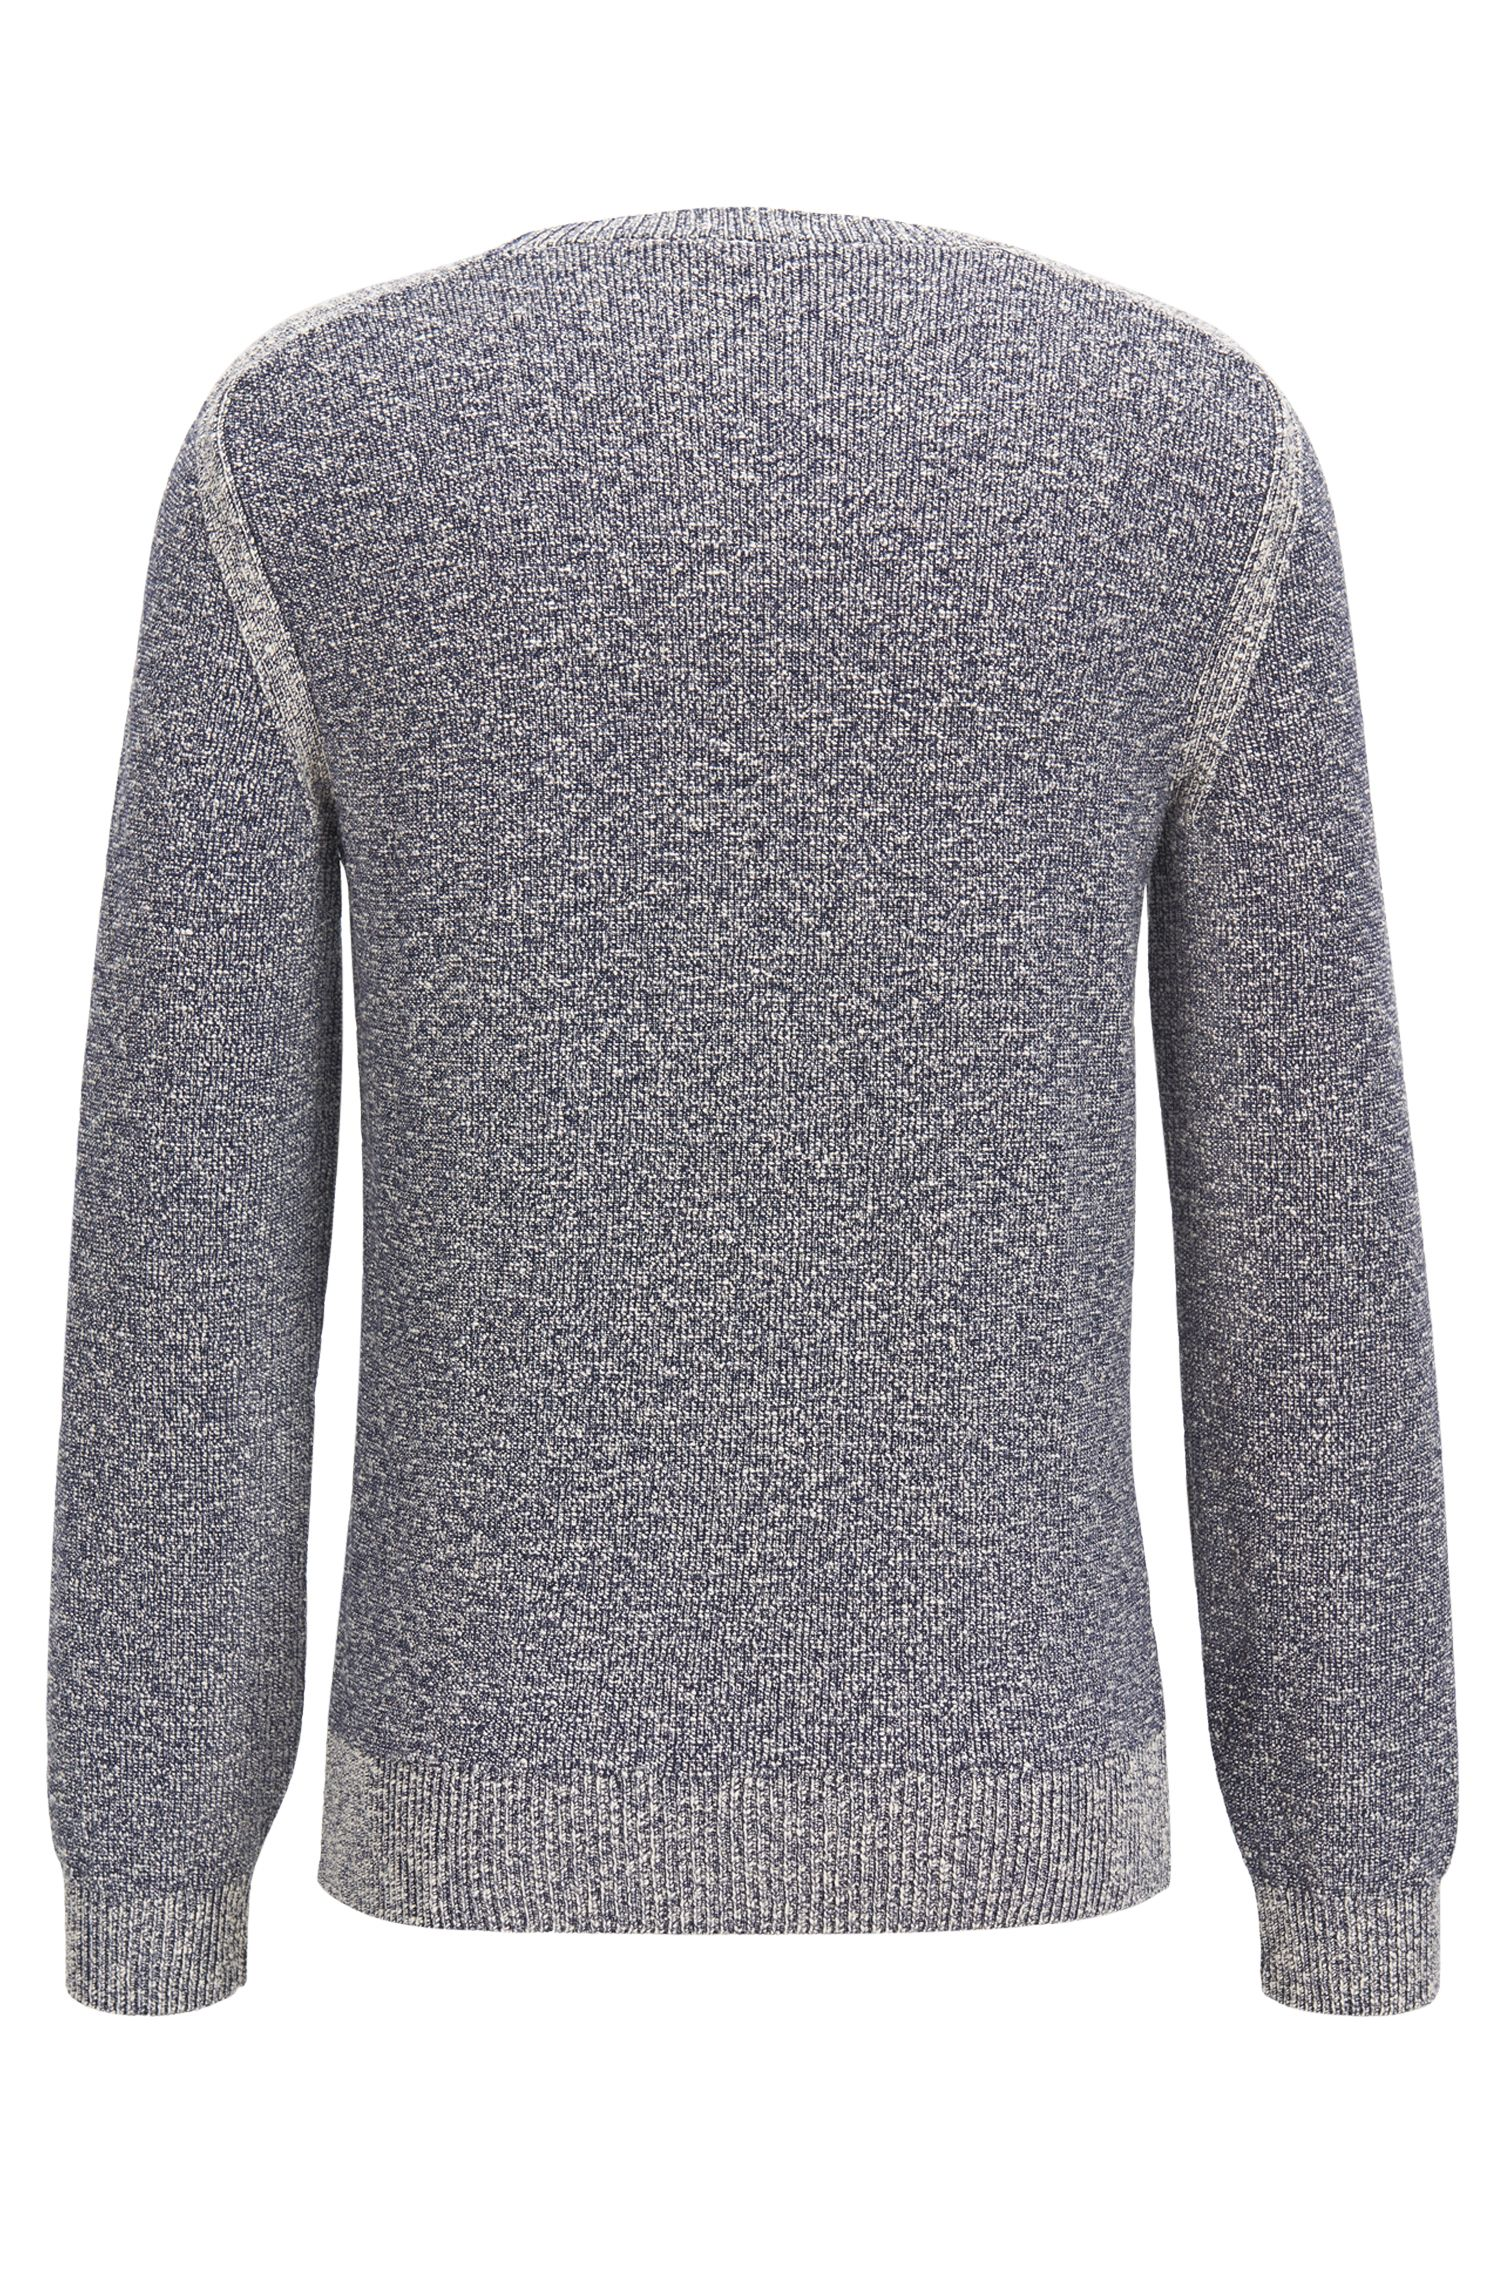 Mouliné cotton-blend sweater with shoulder detailing, Dark Blue